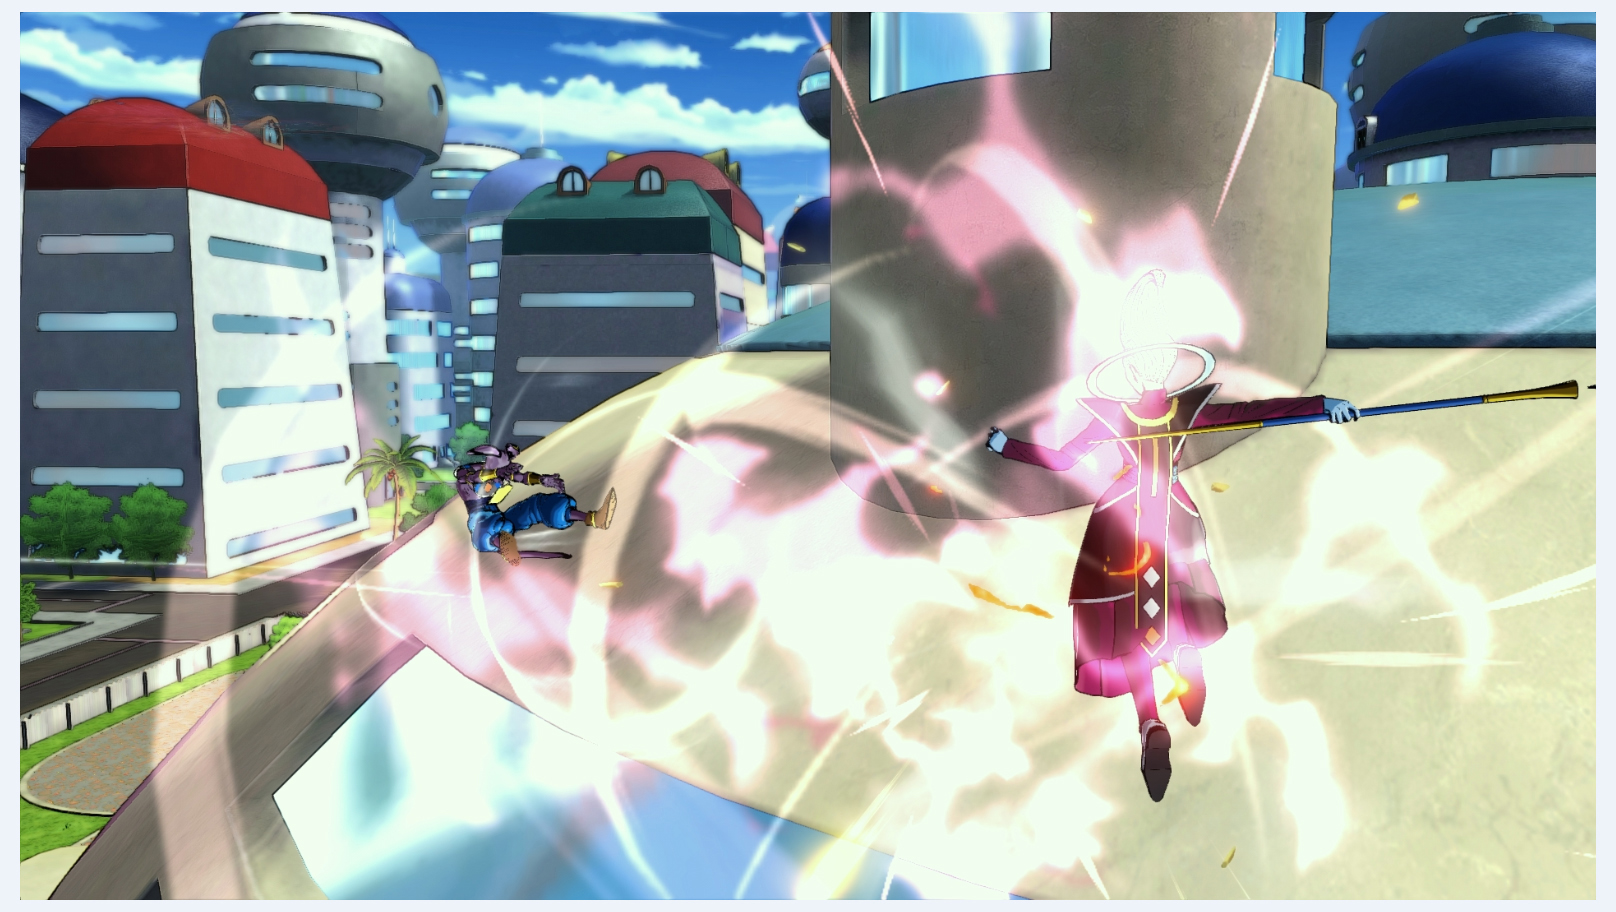 Dragon Ball Xenoverse Jan 2015 Screenshots 49